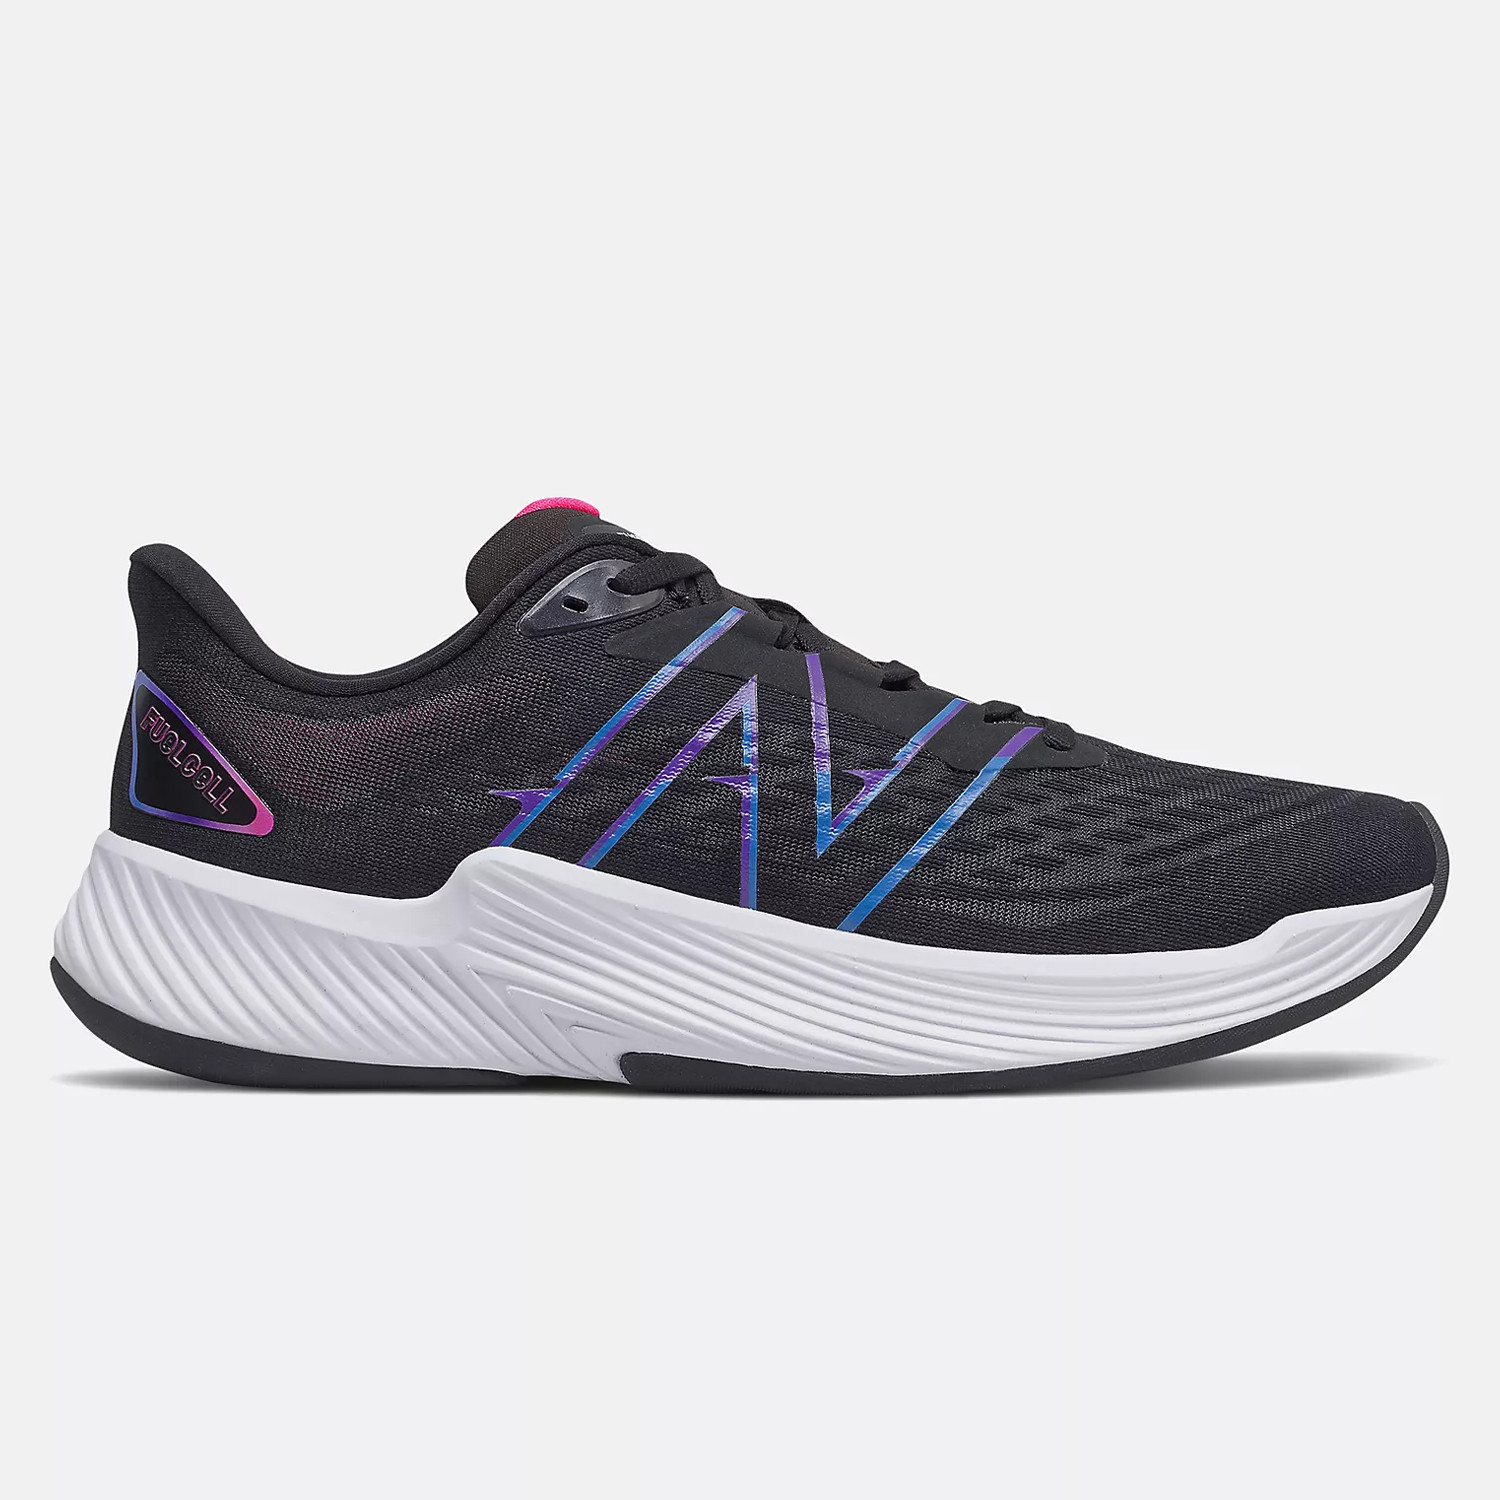 New Balance Fuelcell Prism V2 – Running (9000092177_1469)